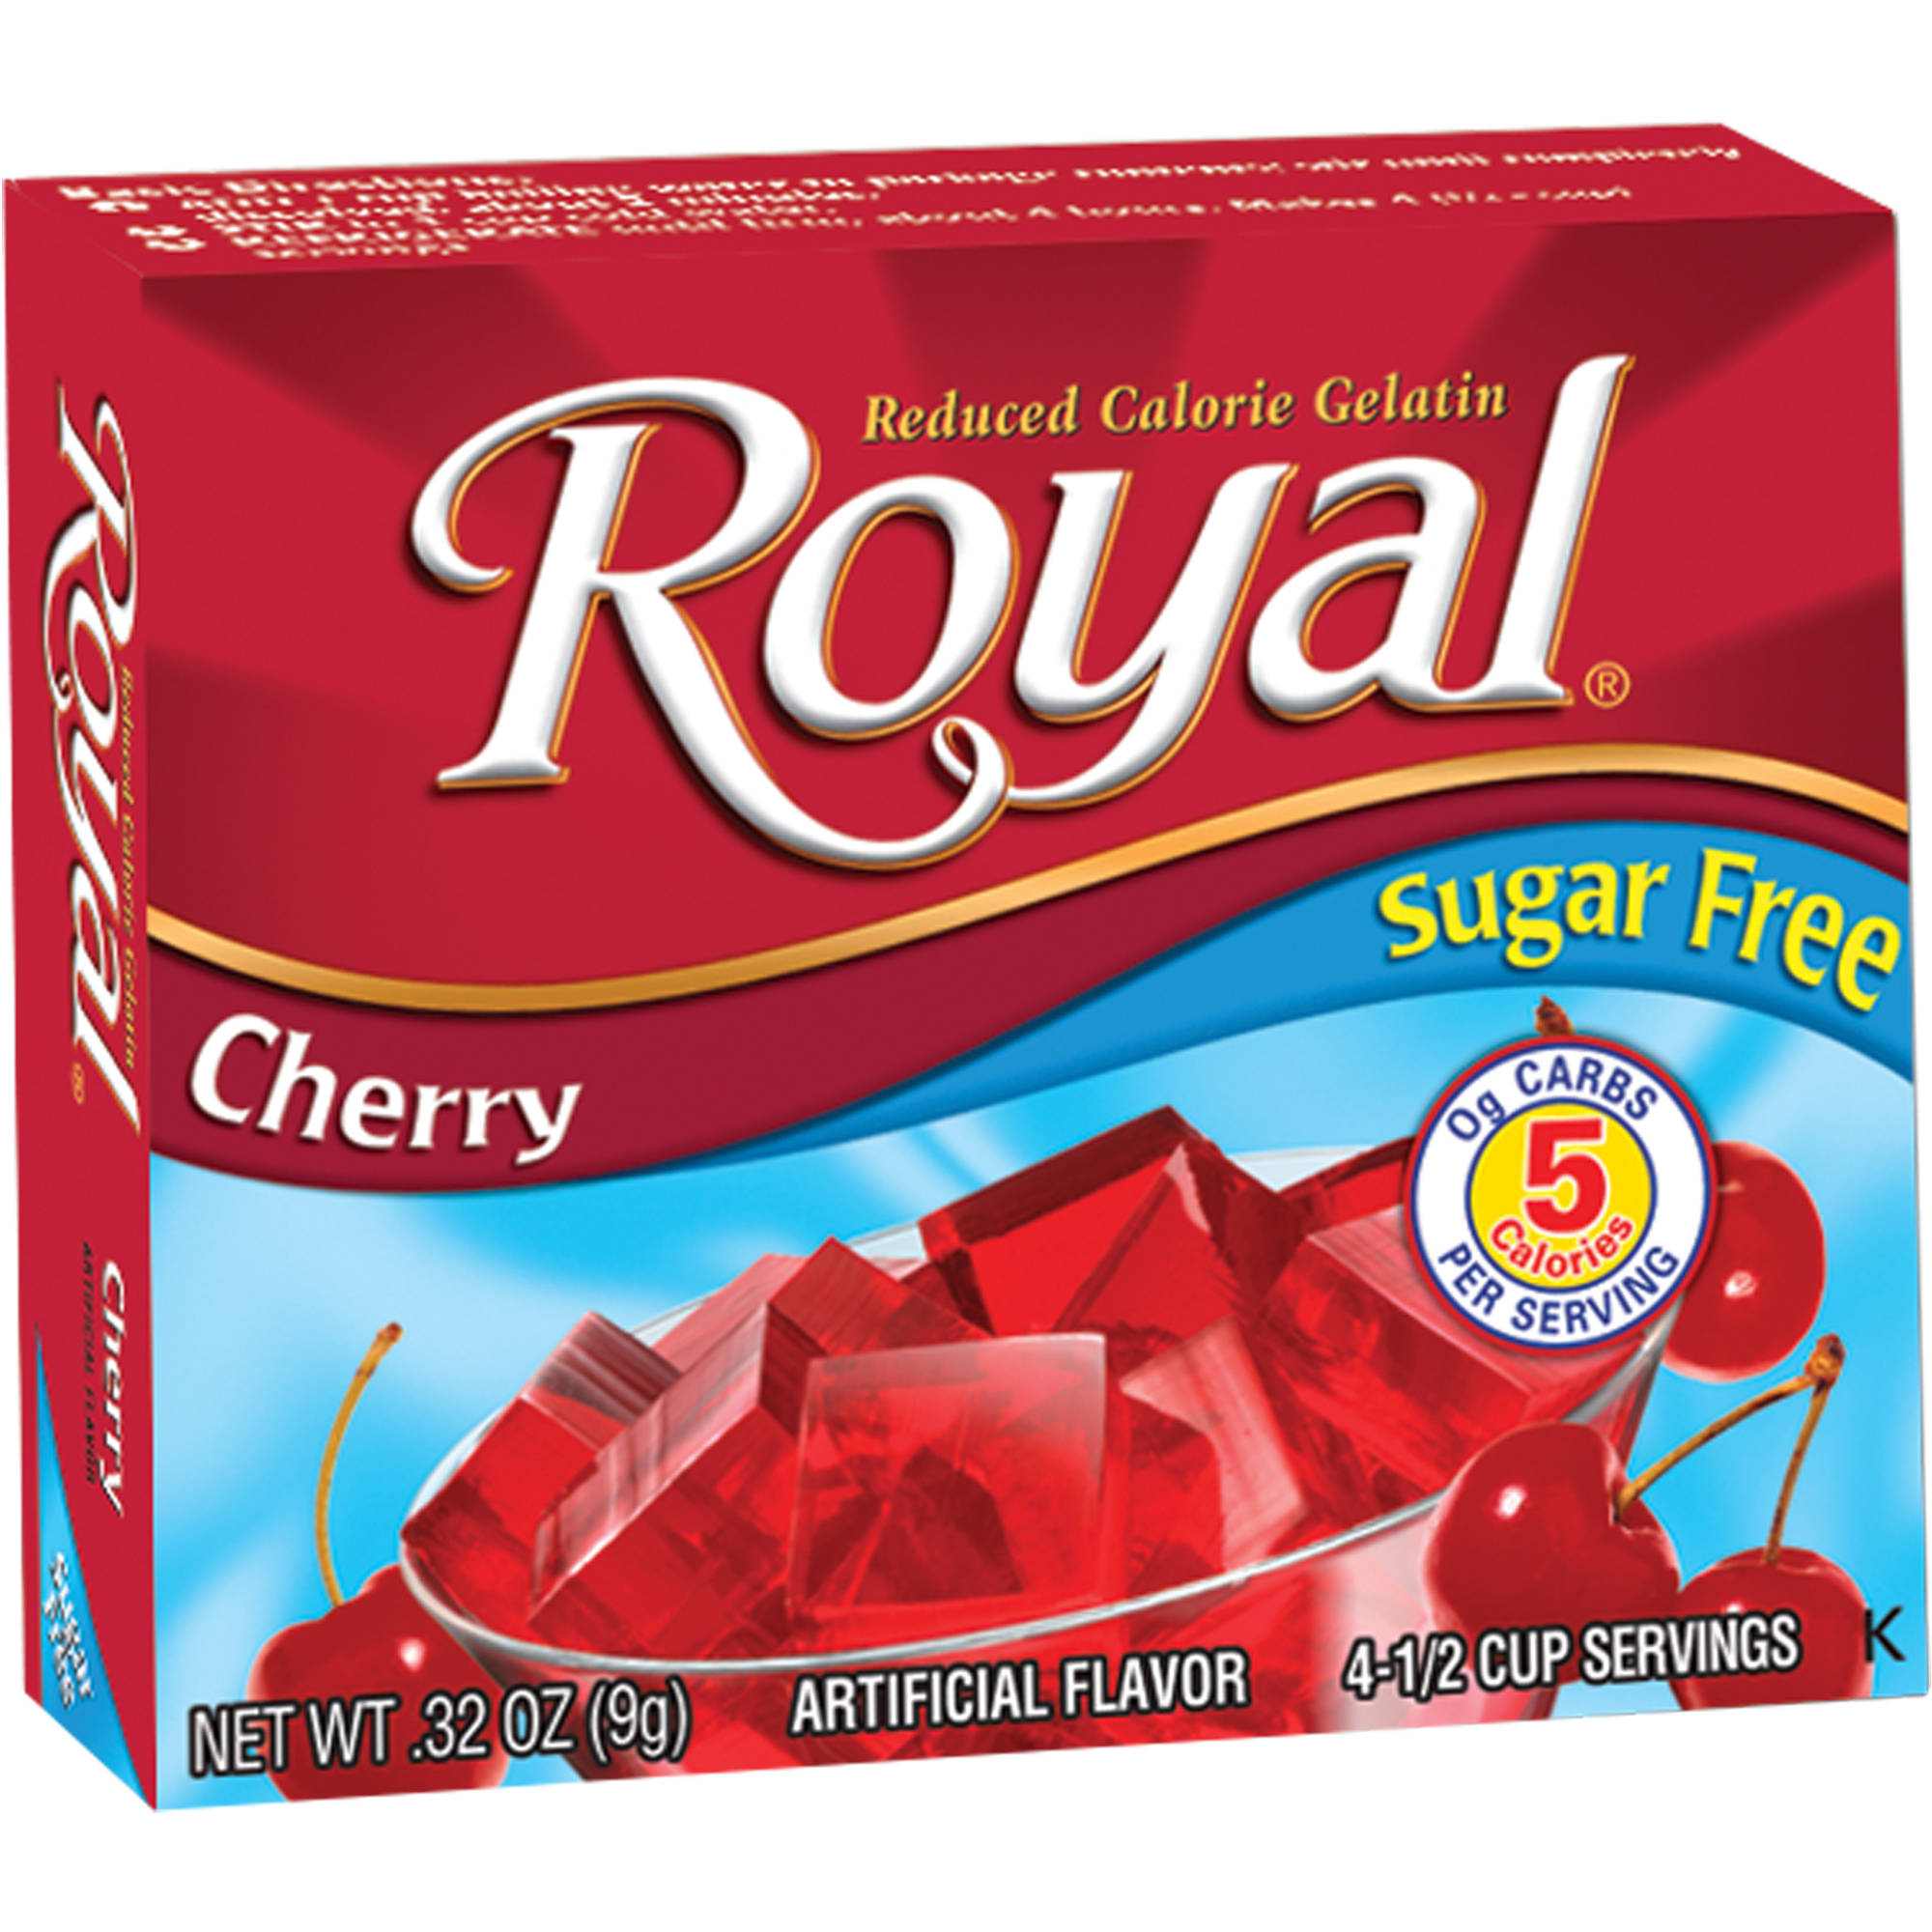 Royal Cherry Reduced Calorie Gelatin, 0.32 oz, (Pack of 12)